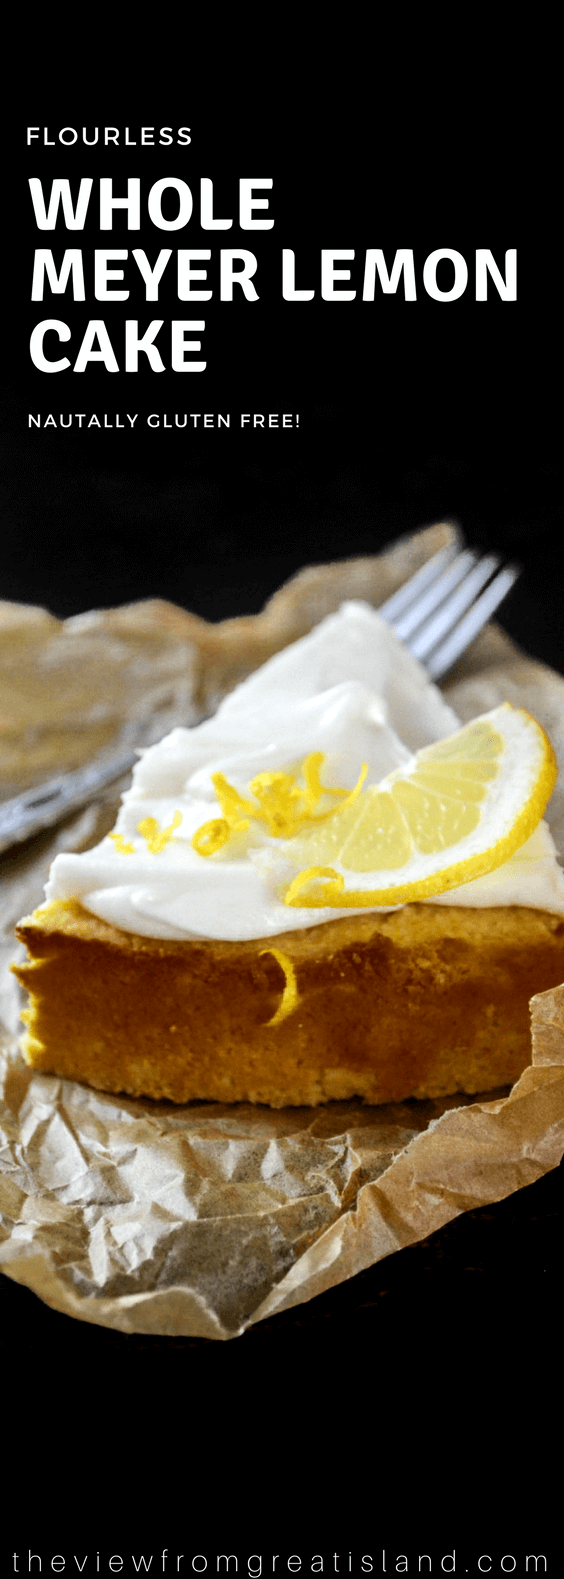 This naturally gluten free Flourless Whole Meyer Lemon cake is made with the entire lemon, peel and all, in the Mediterranean tradition, it has a tender texture and an explosive lemon flavor. #glutenfree #lemoncake #meyerlemon #flourless #flourlesscake #almond #flourlesscakerecipe #citrus #italiancake #italianlemoncake #almondcake #wholefruit